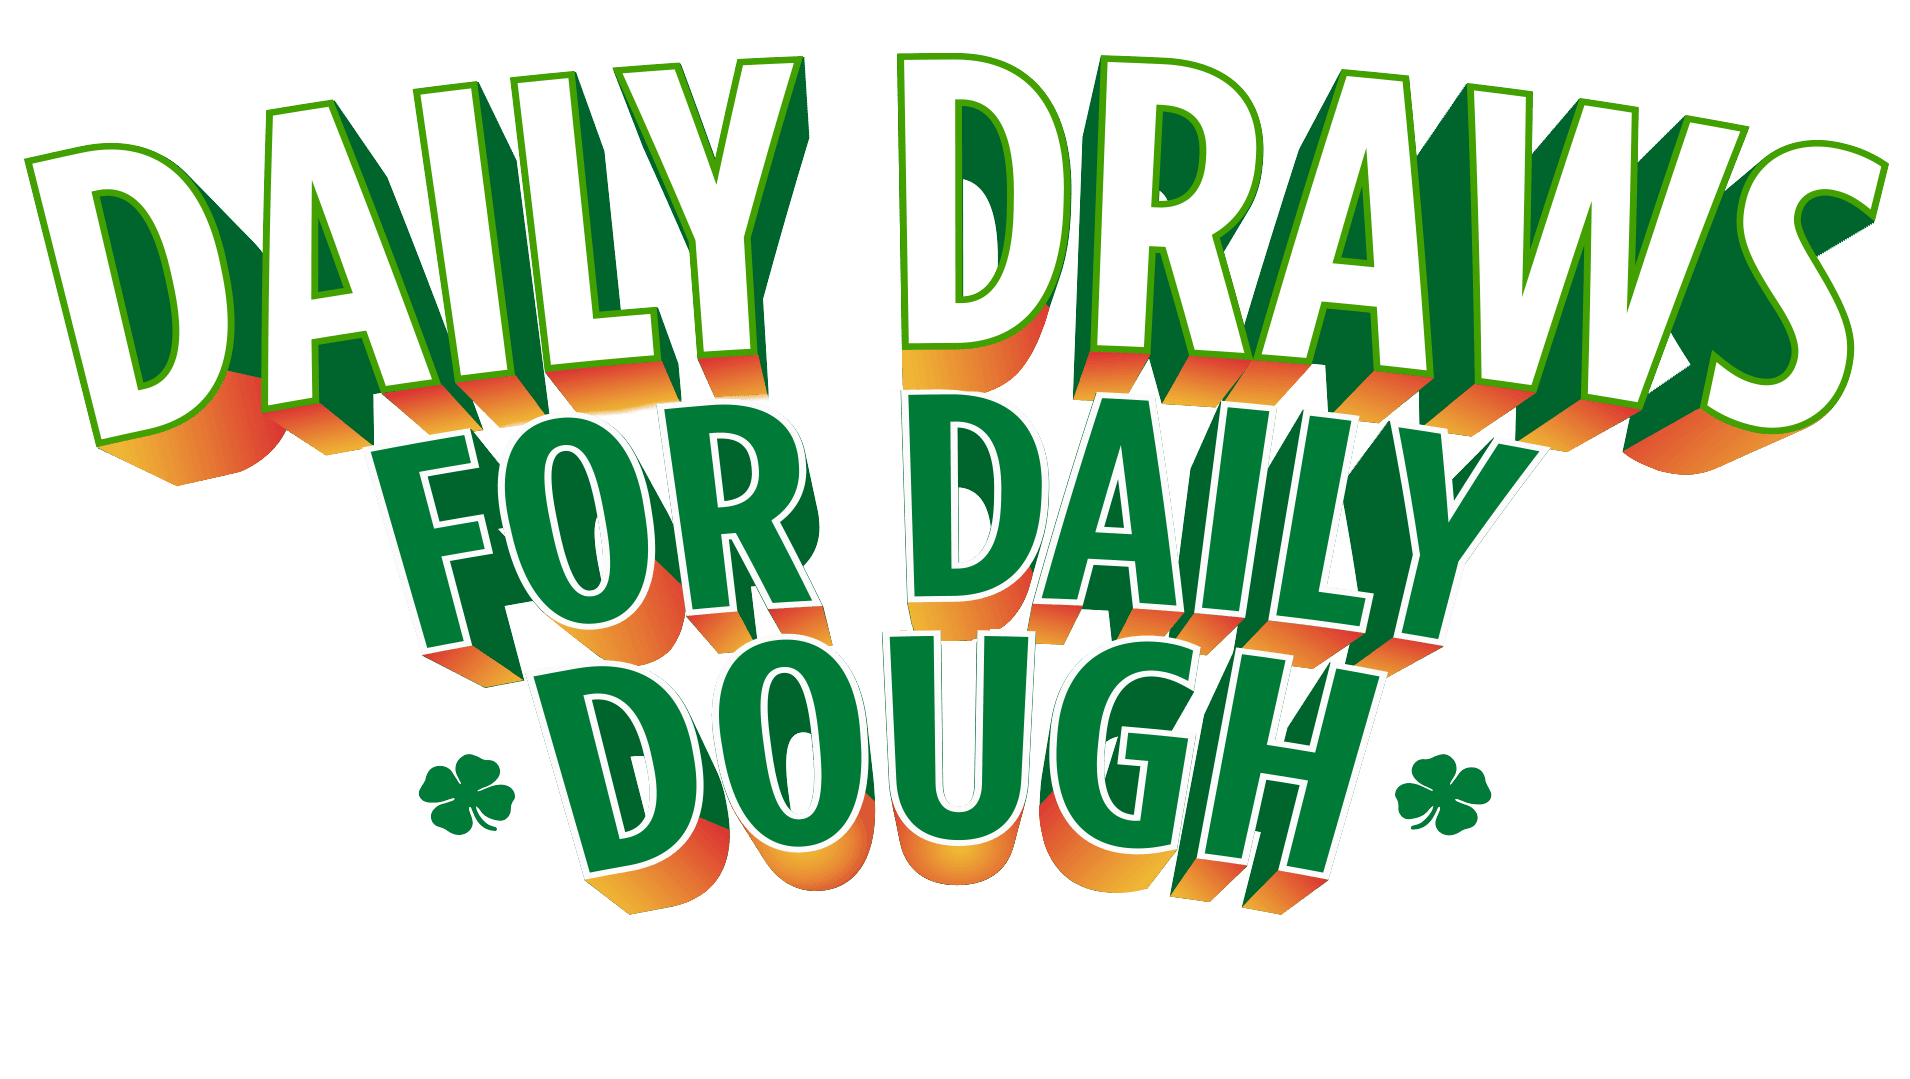 Daily Draws for Daily Dough